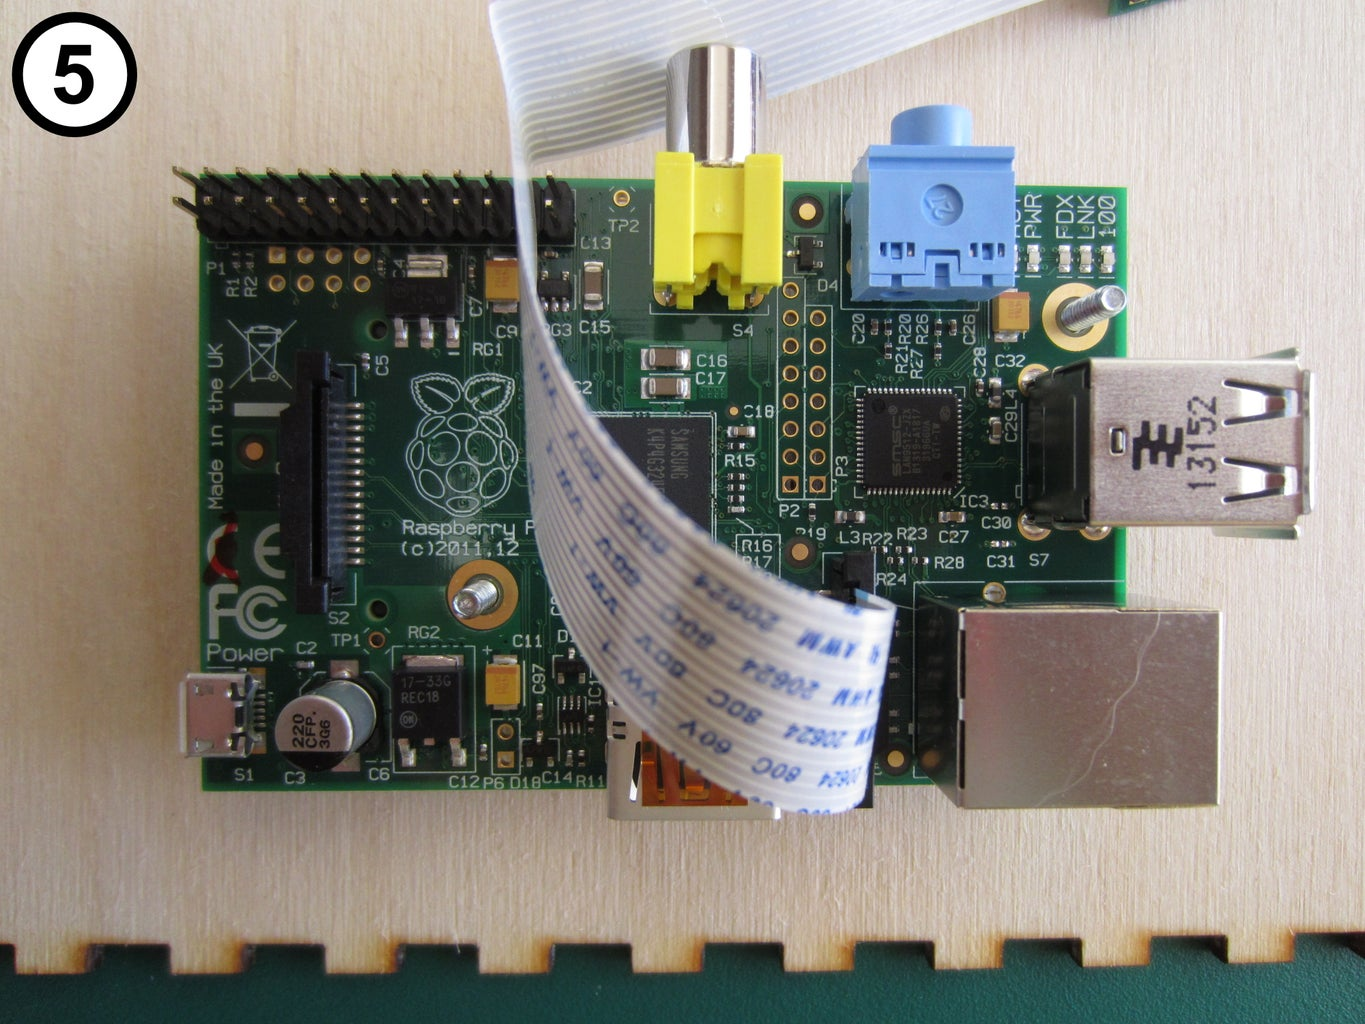 Mount the Raspberry Pi on the Front Panel